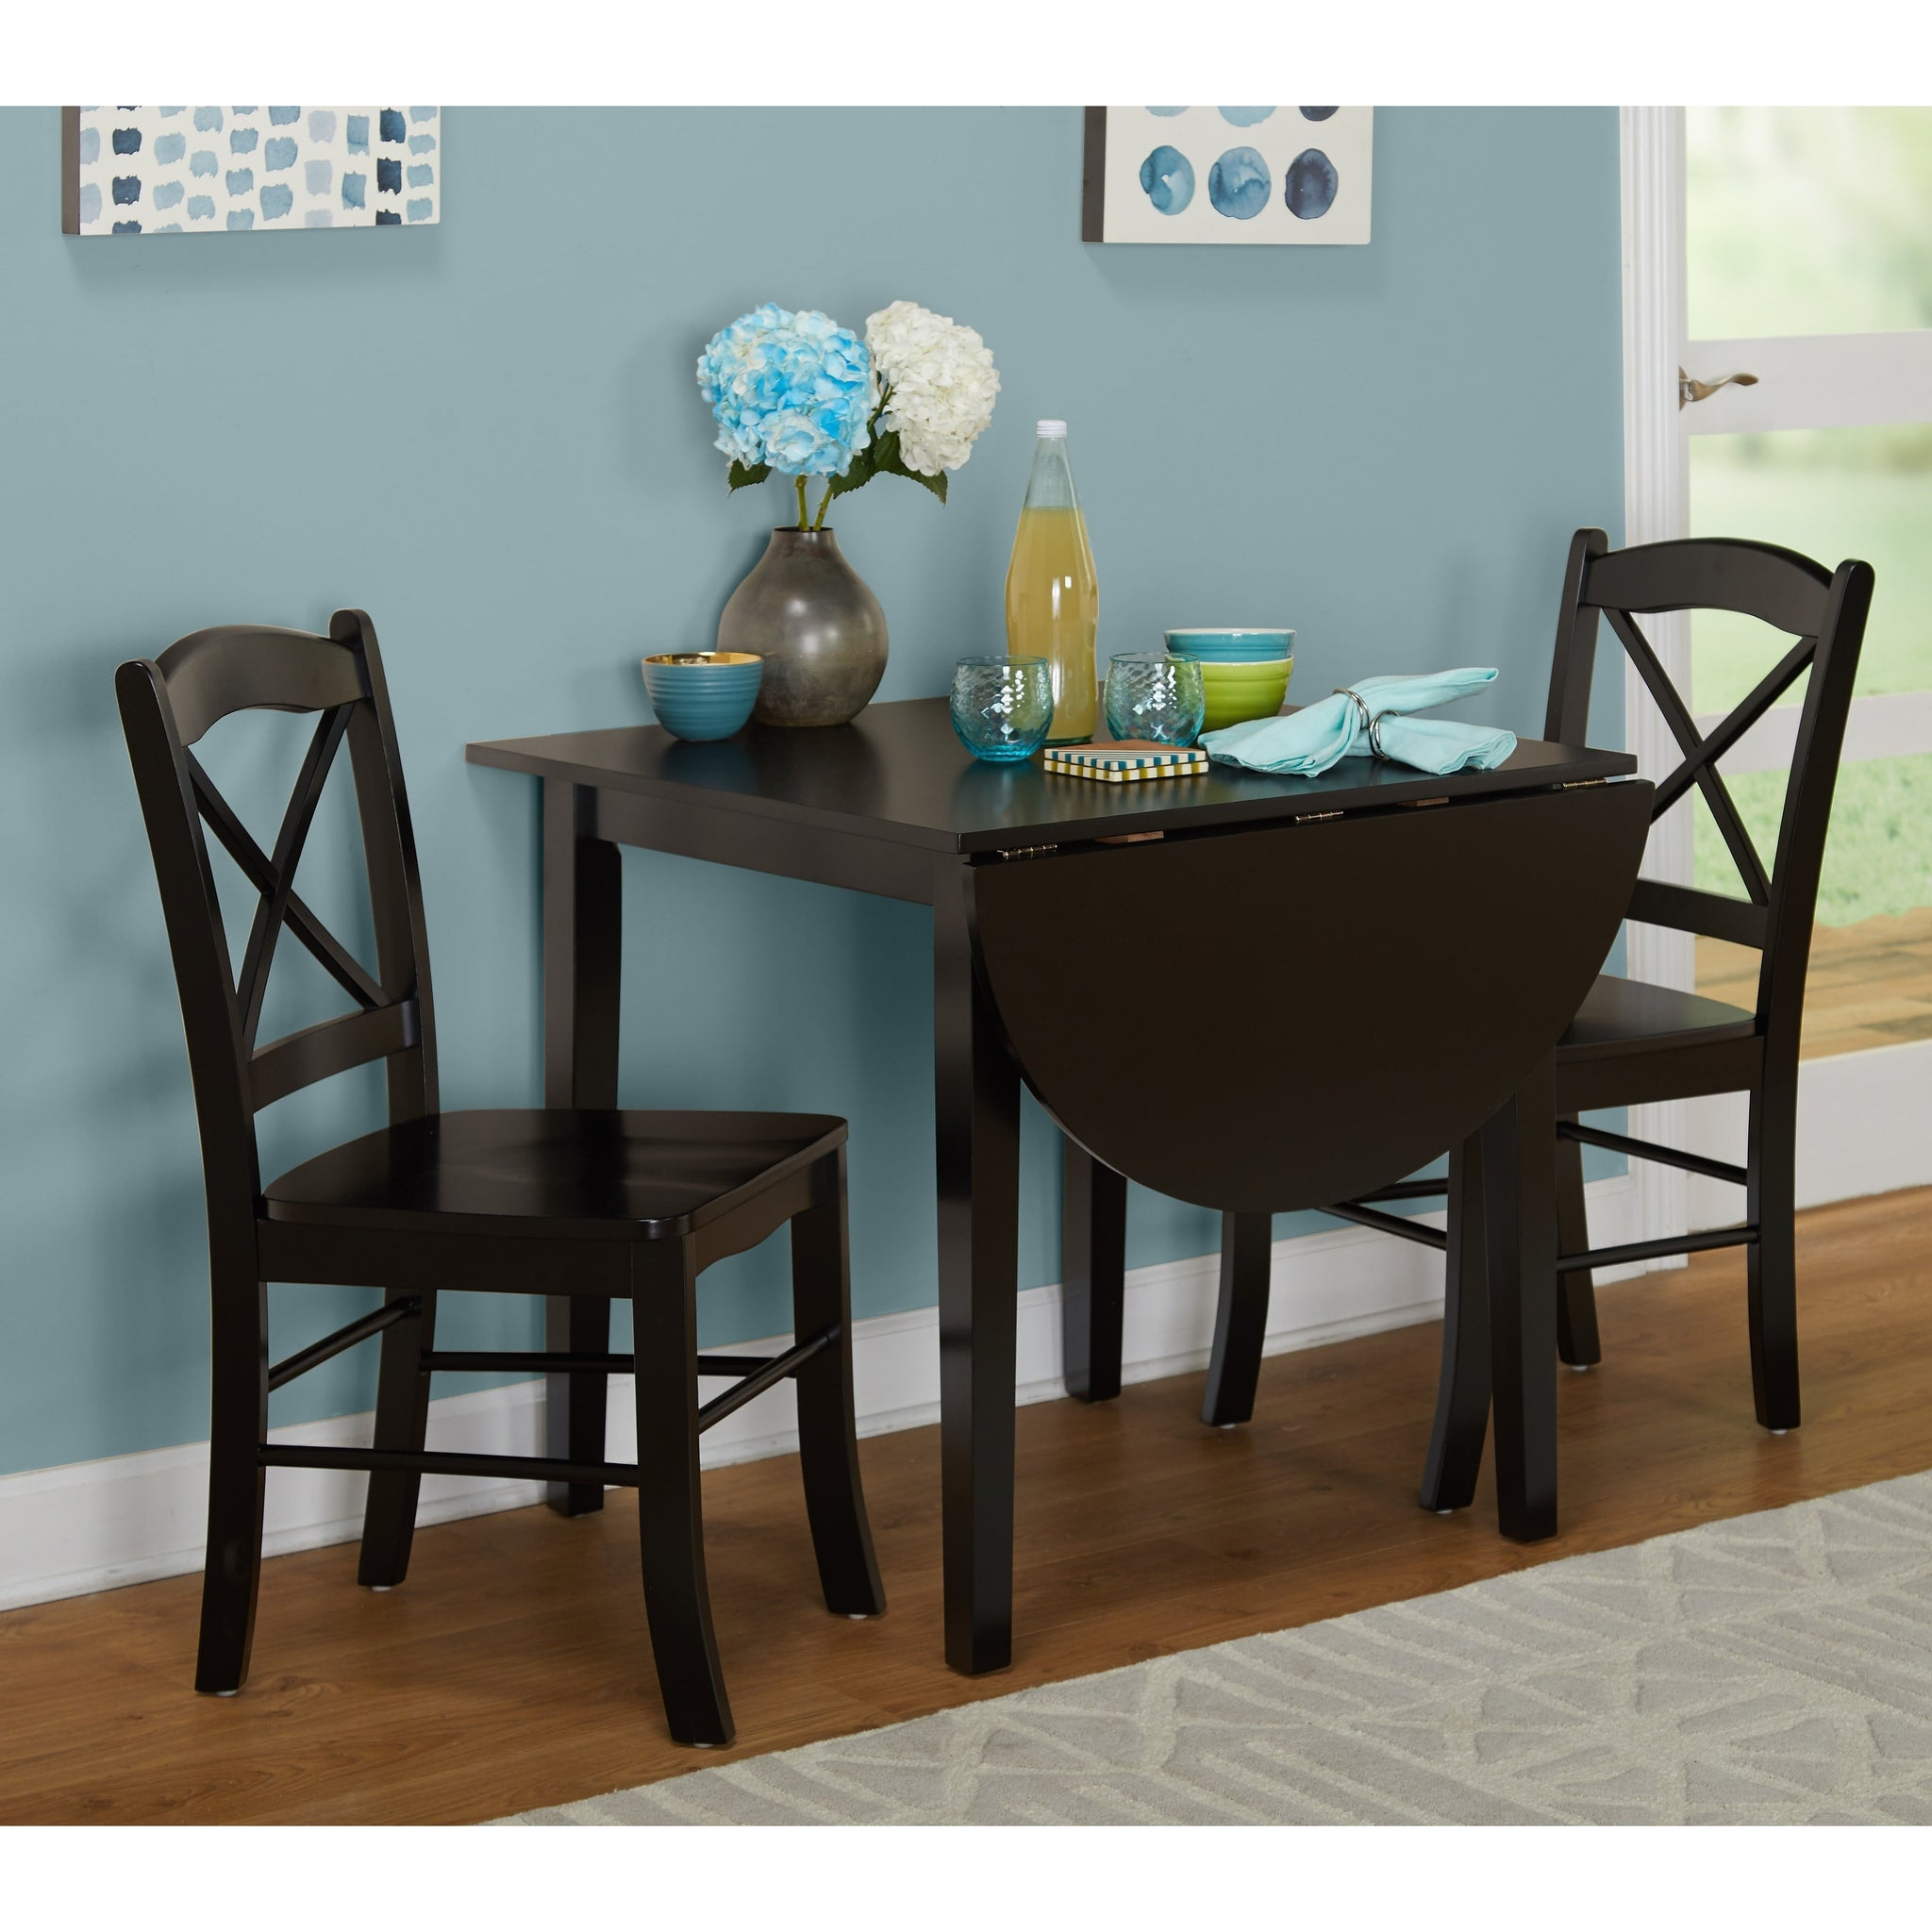 Charmant Three Piece Country Cottage Dining Set